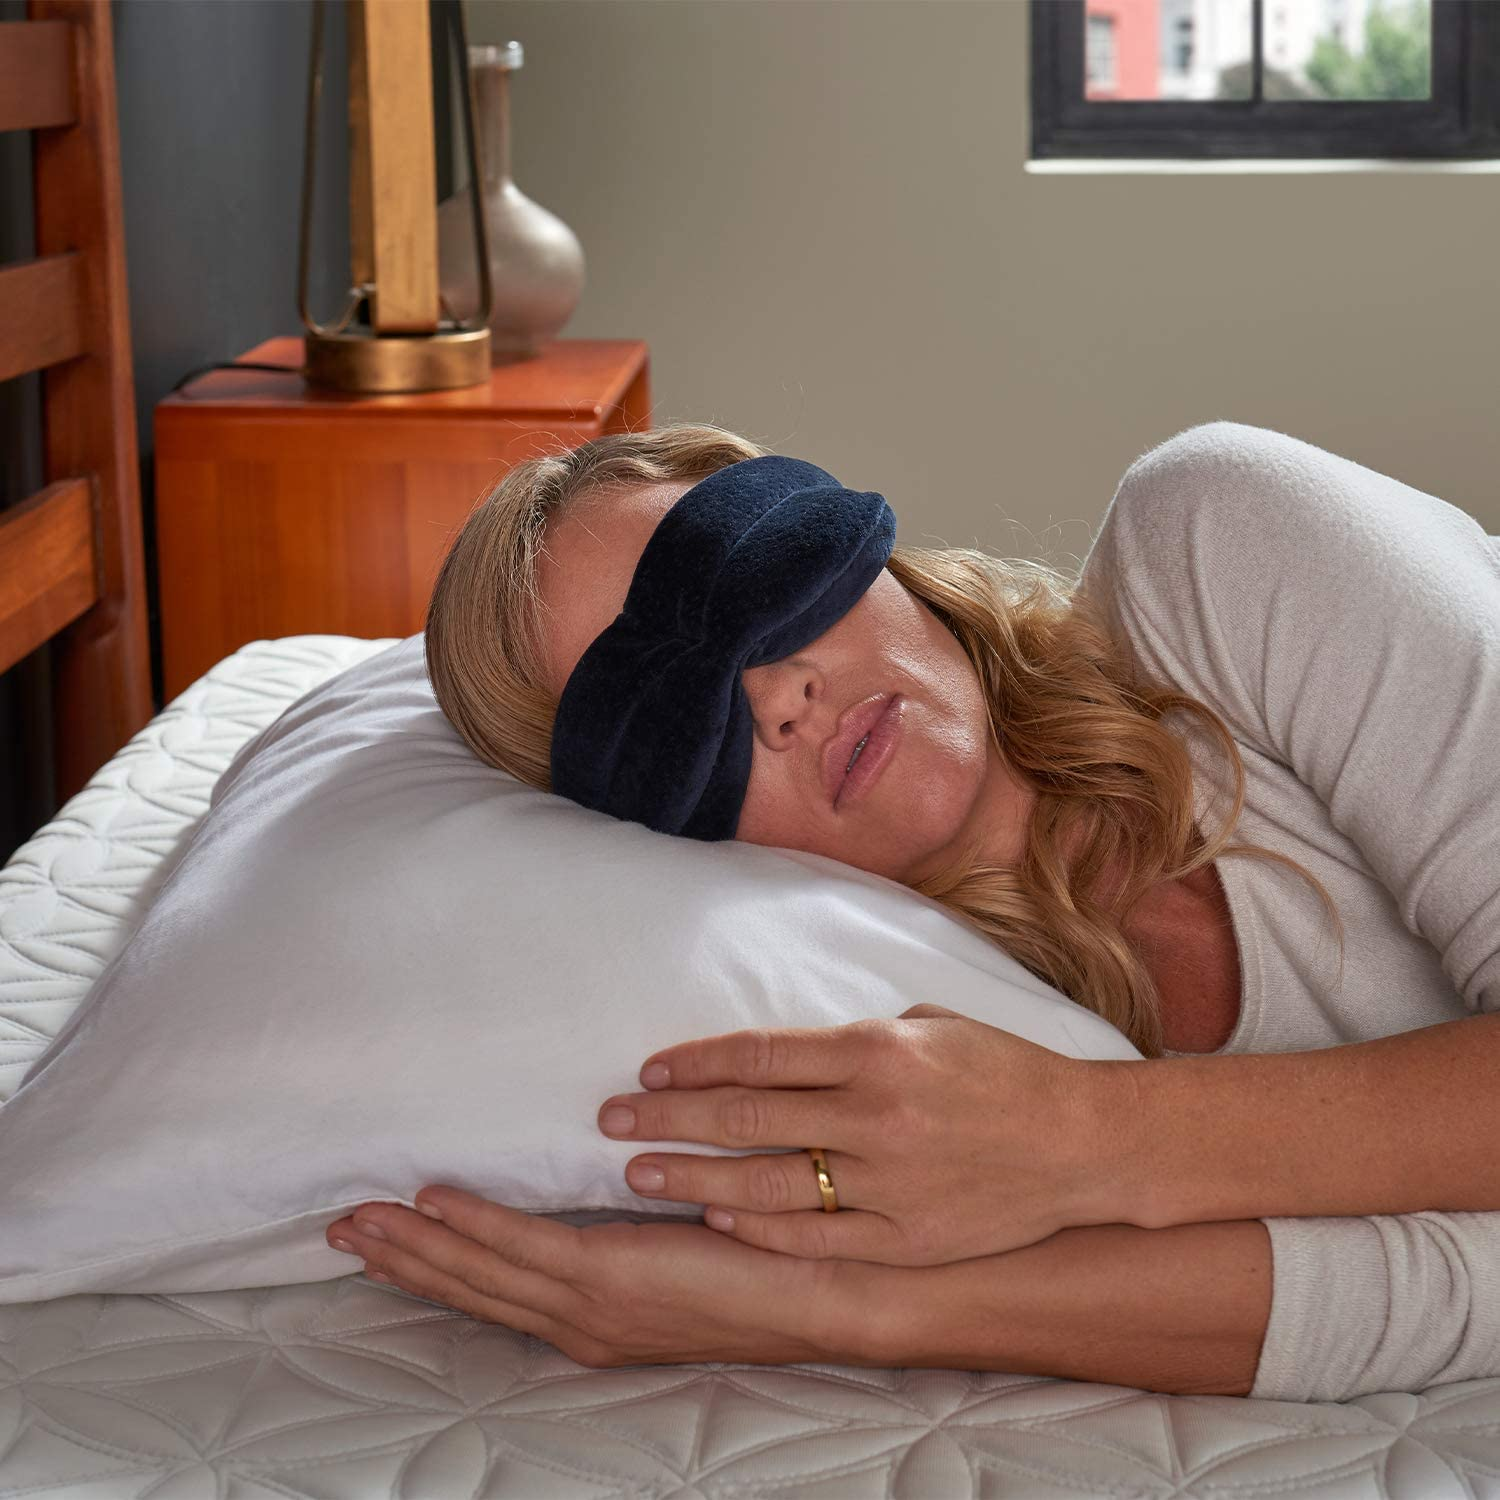 Tempurpedic Sleep Mask New In Box FREE SHIPPING